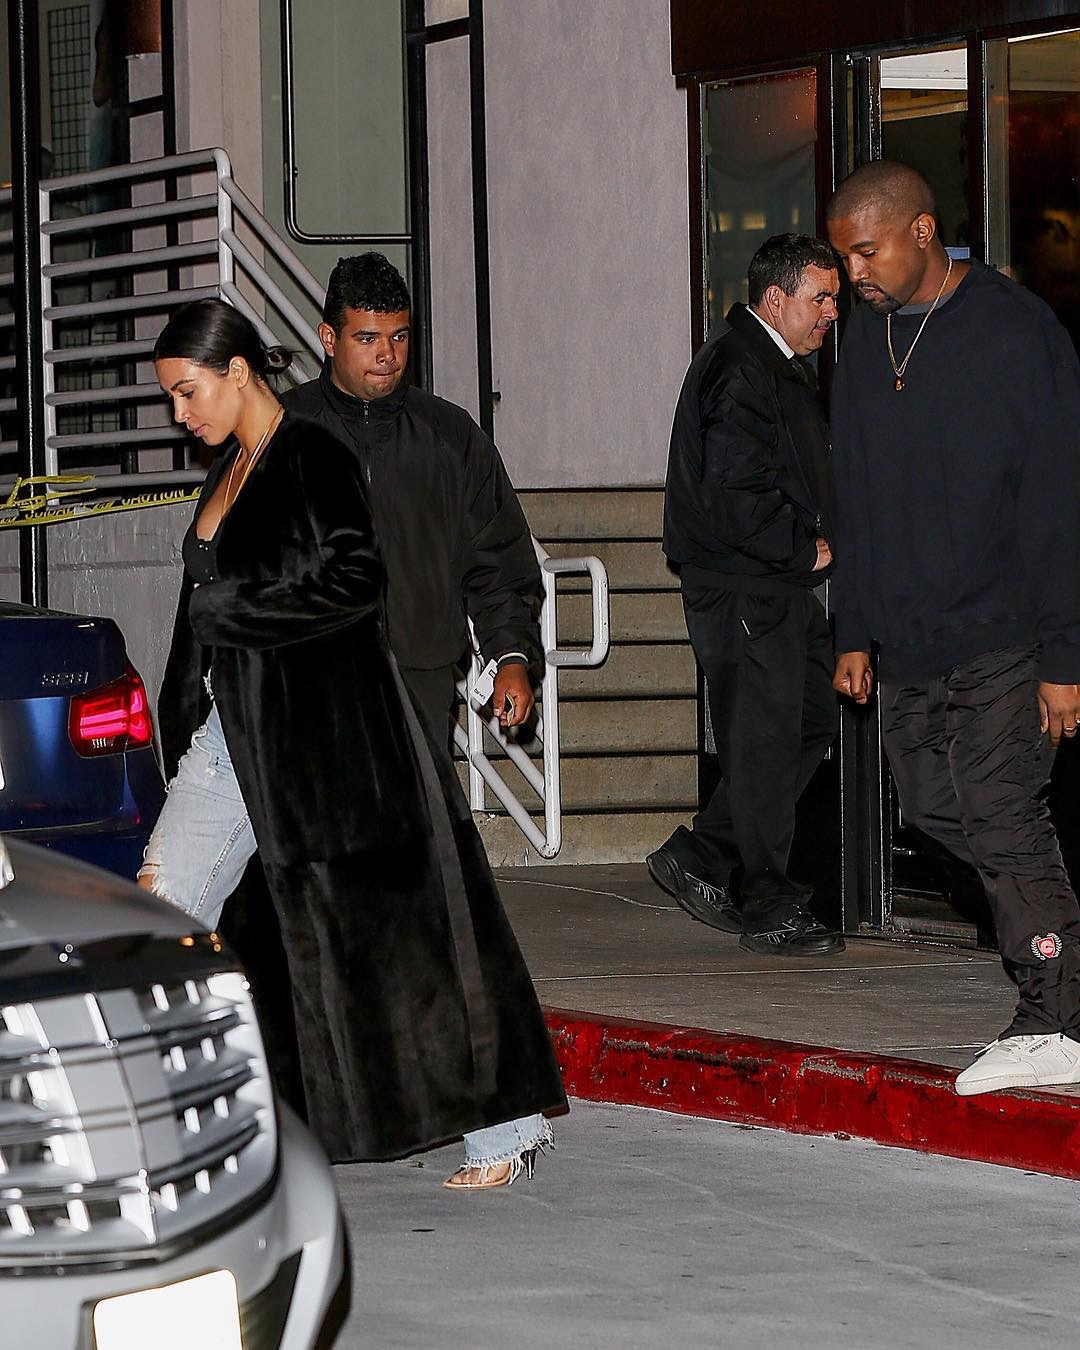 SPOTTED: Kanye West In Adidas Calabasas Yeezy Pants And Sneakers